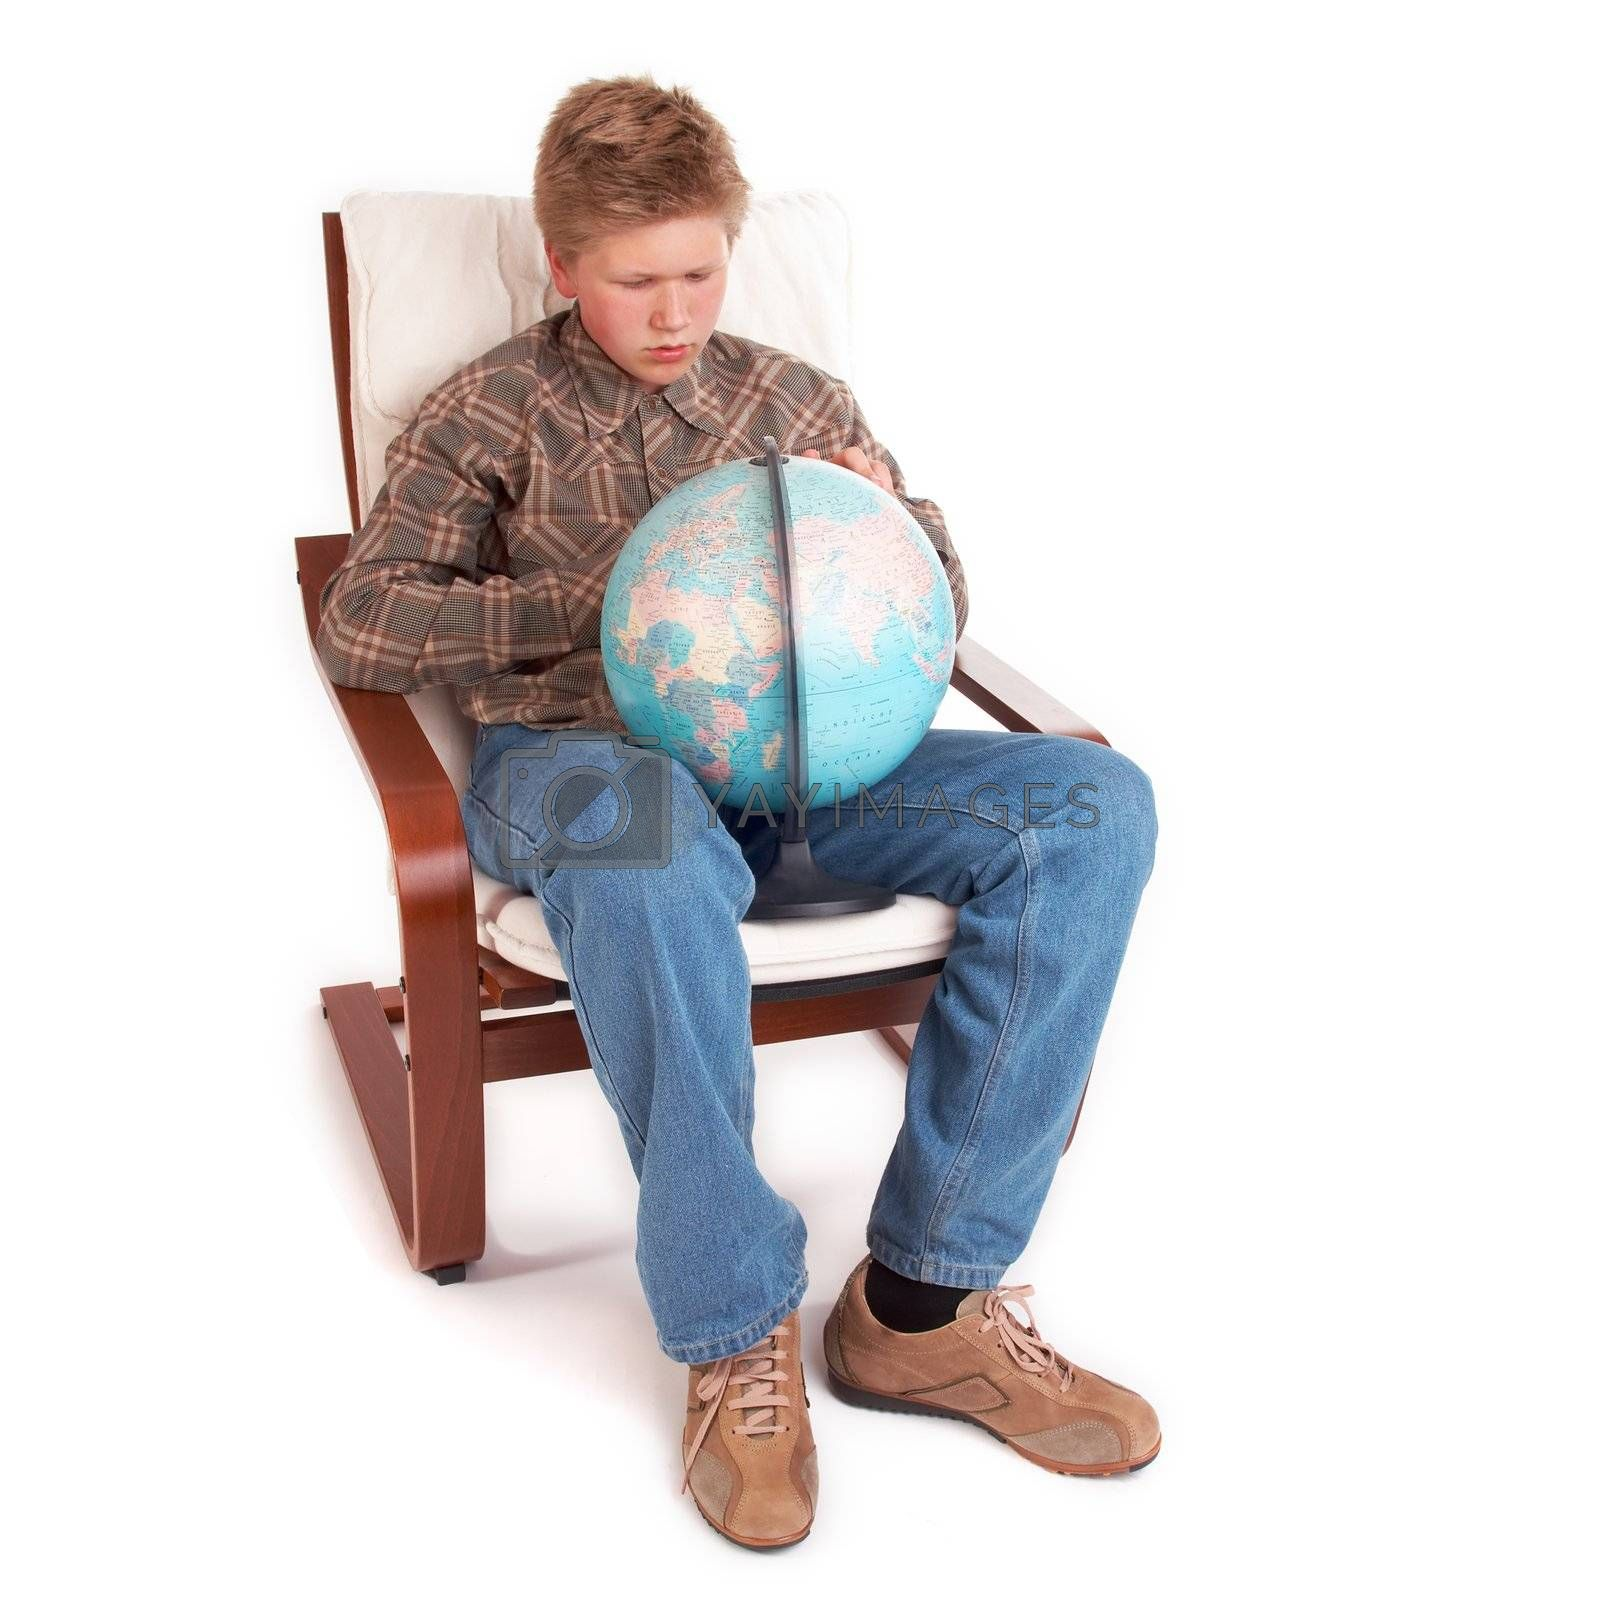 Blond teenager boy sitting with globe; isolated on white